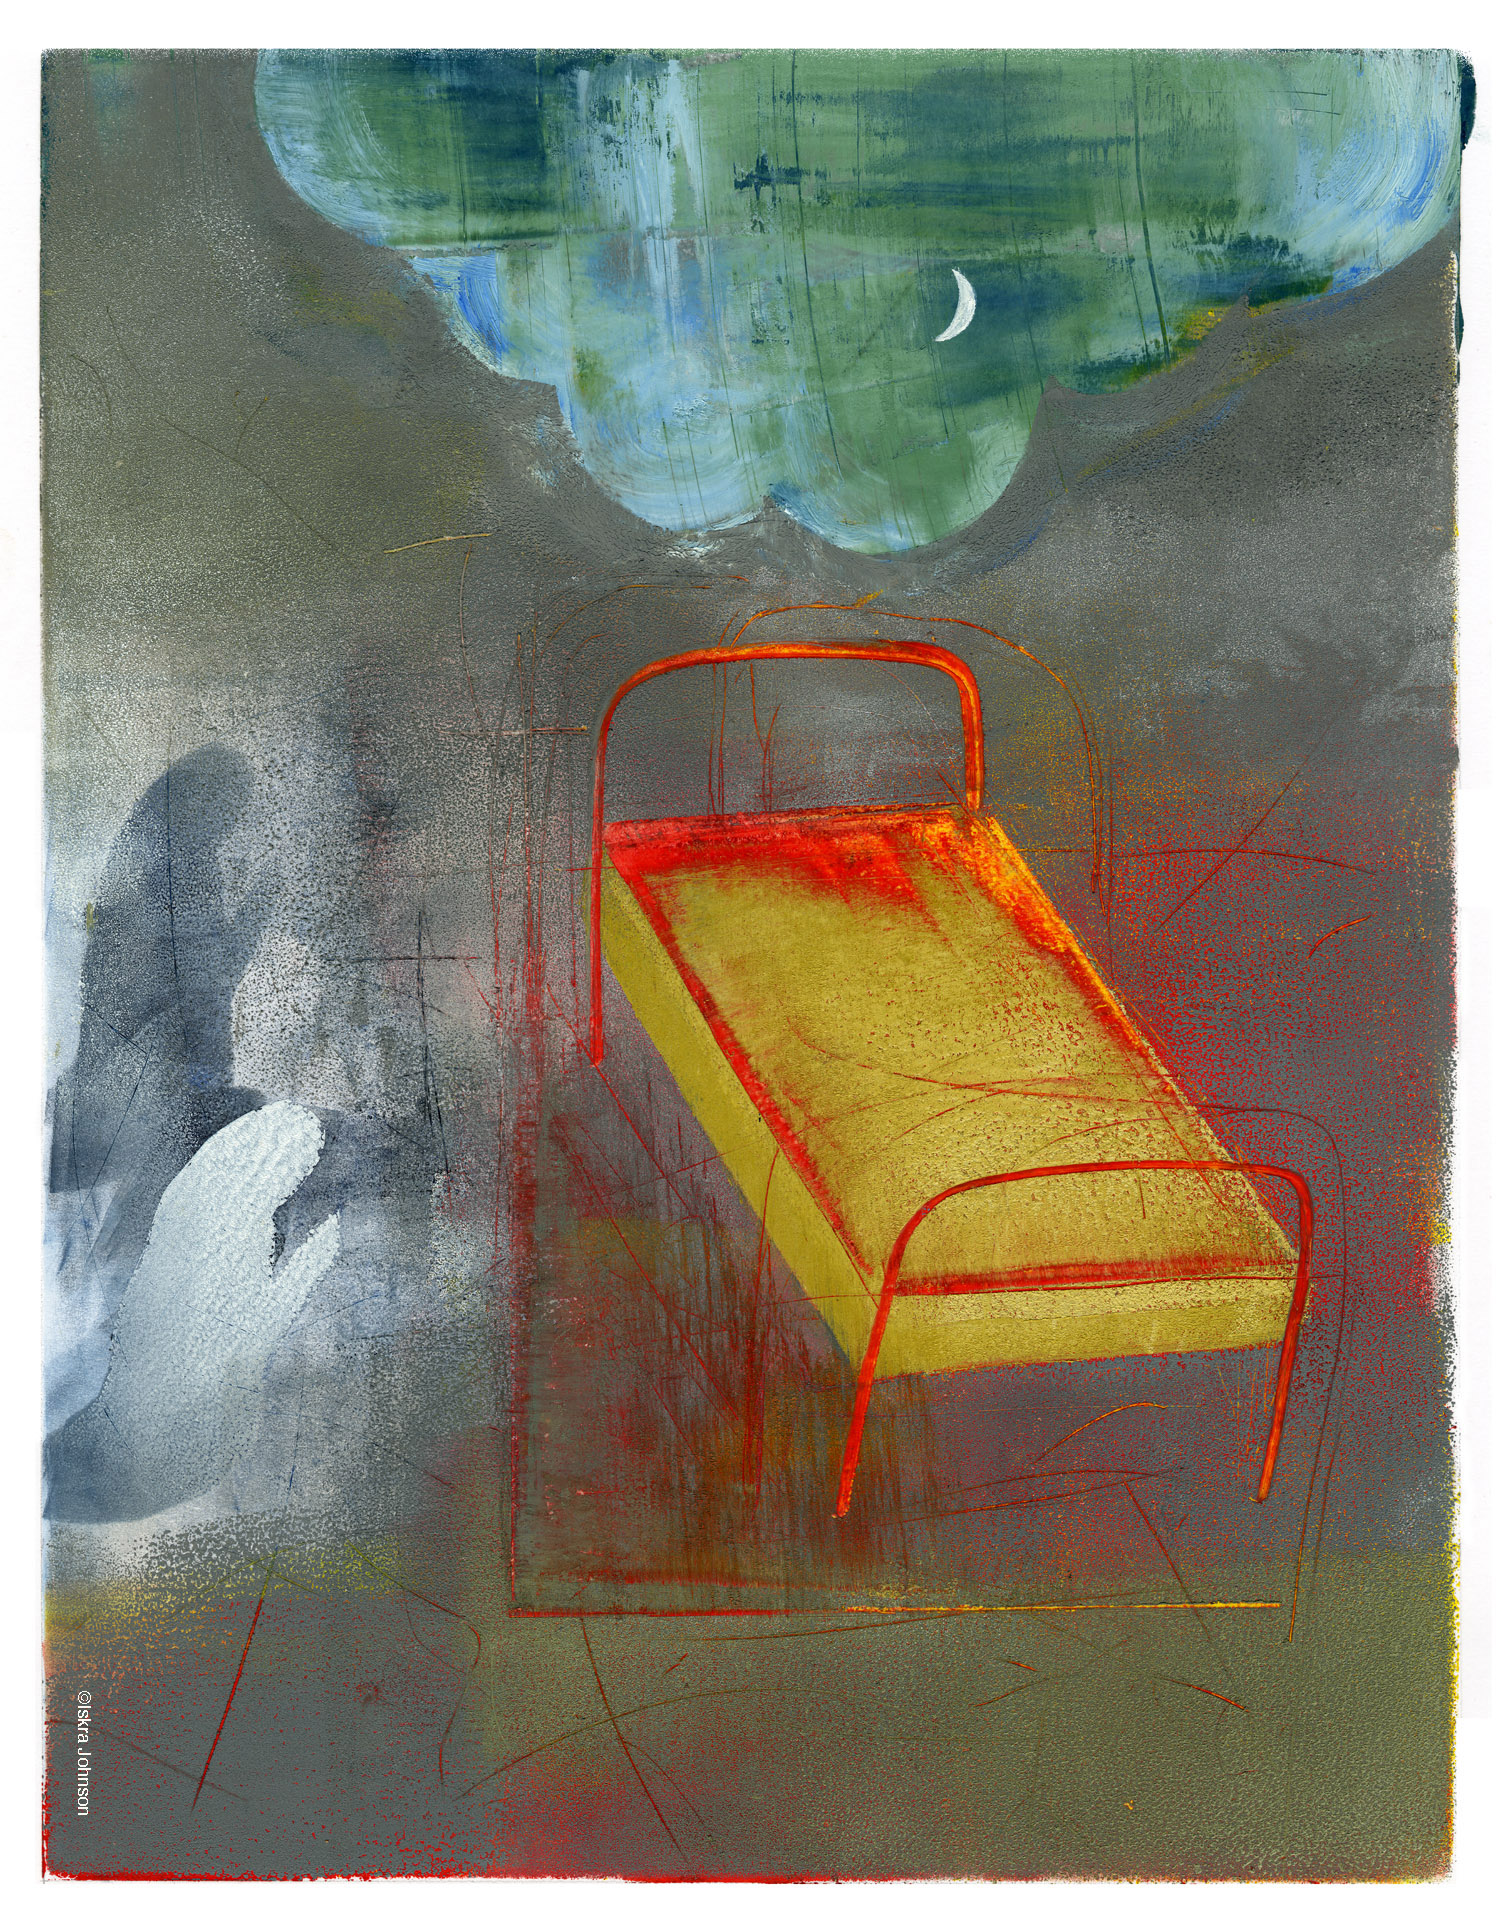 The Red Bed, Painting by Iskra